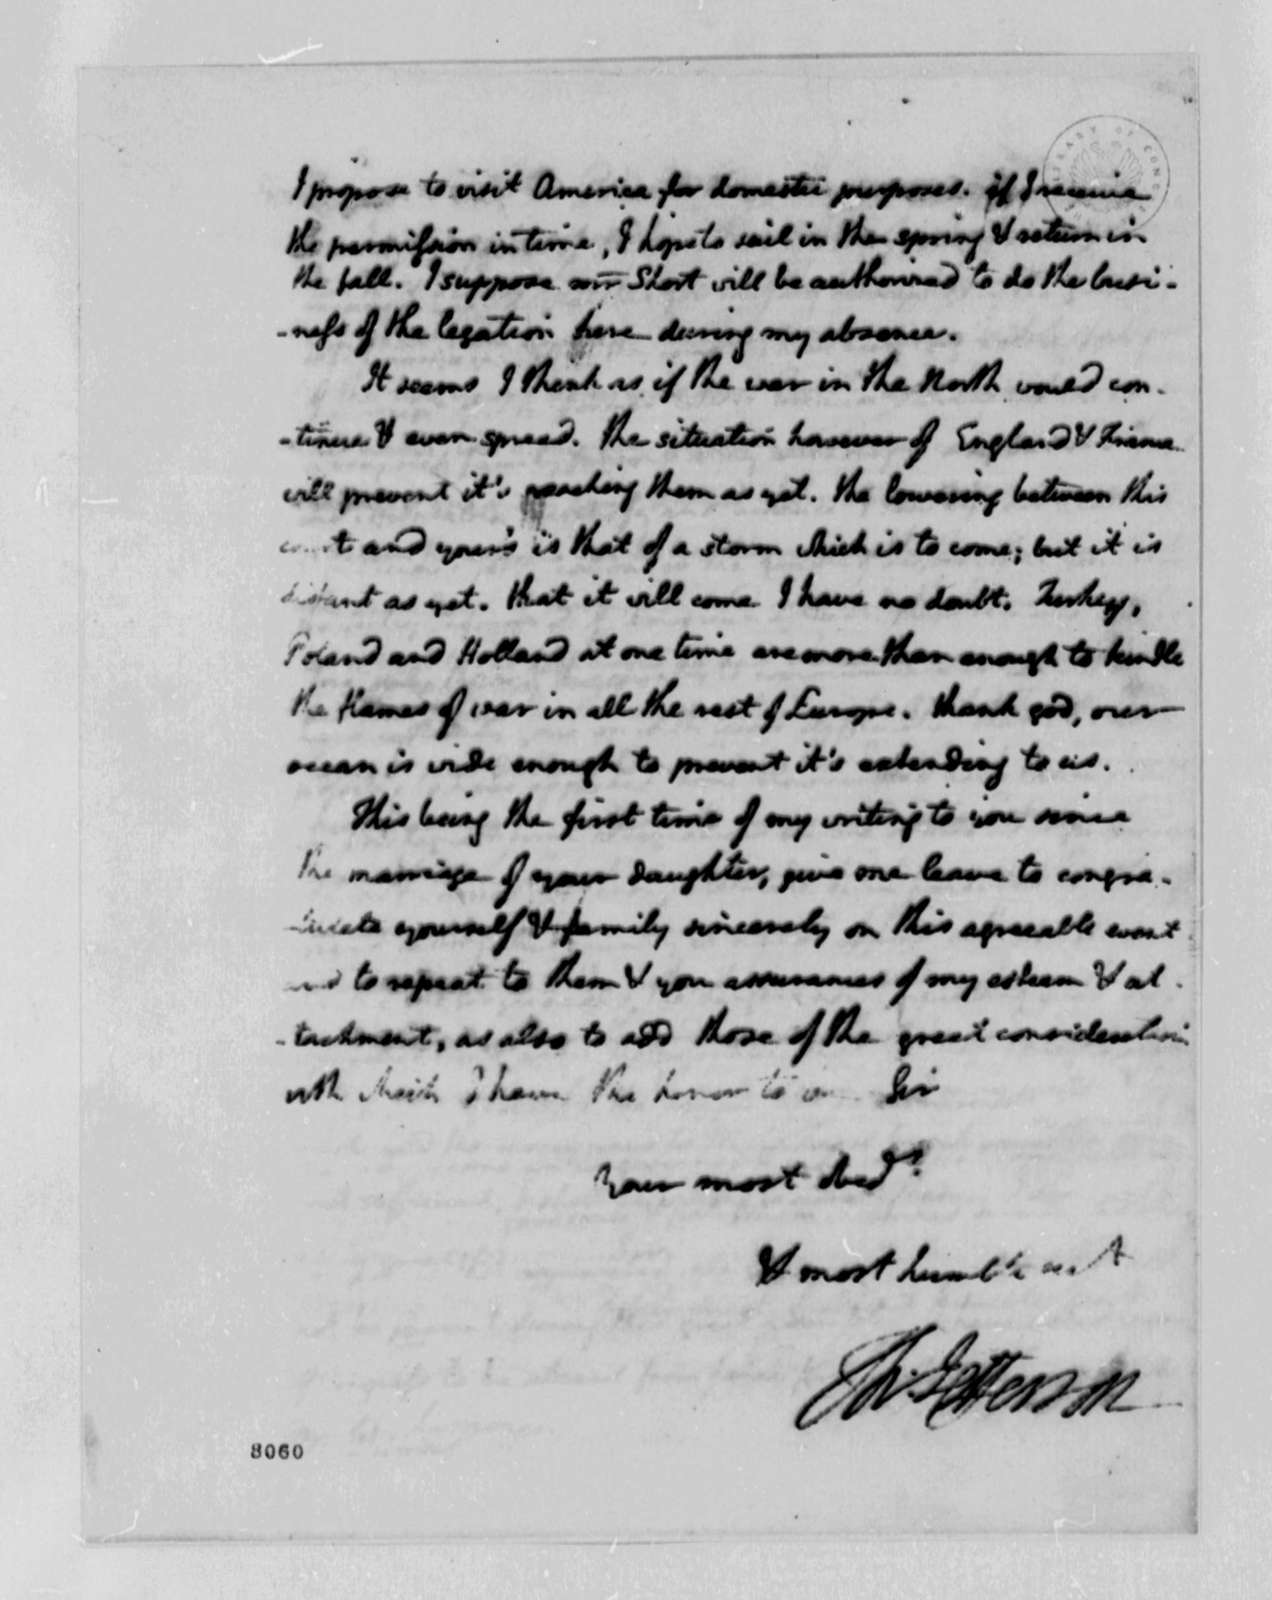 Thomas Jefferson to Charles William Frederic Dumas, March 8, 1789